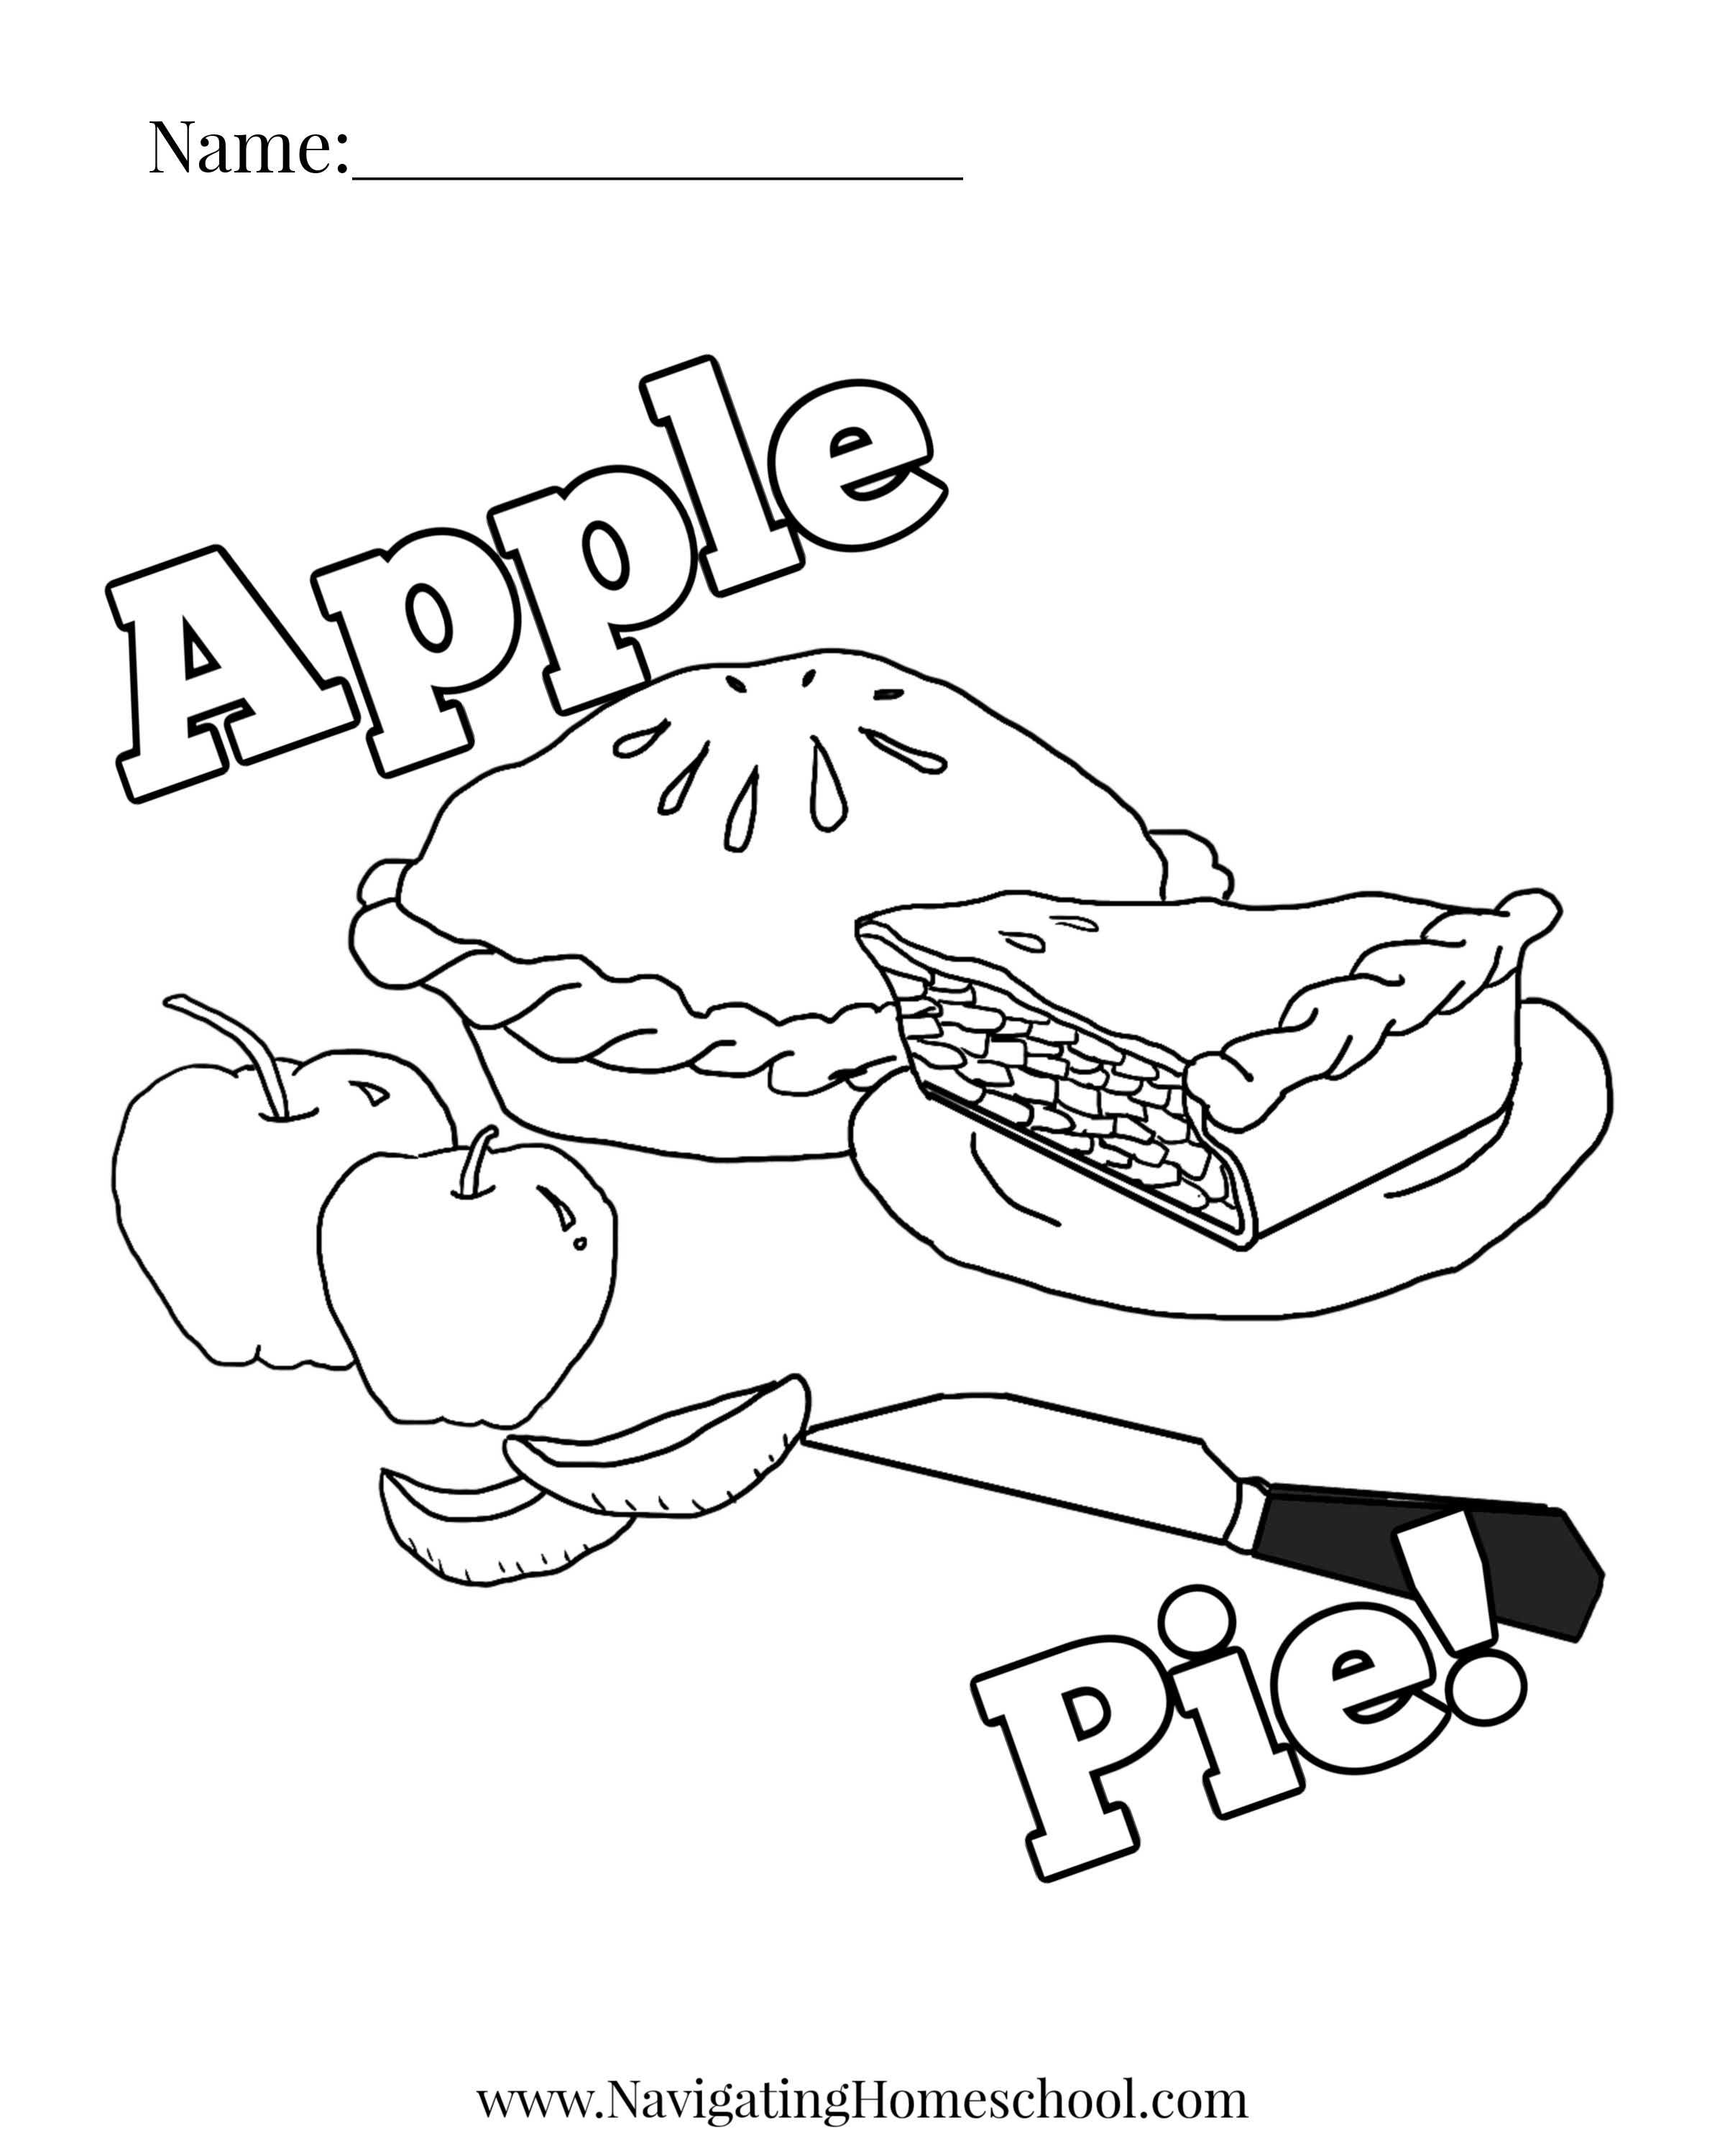 Apple Pie Coloring Sheet Free Thanksgiving Printables Thanksgiving Activities For Kindergarten Thanksgiving Elementary Activities